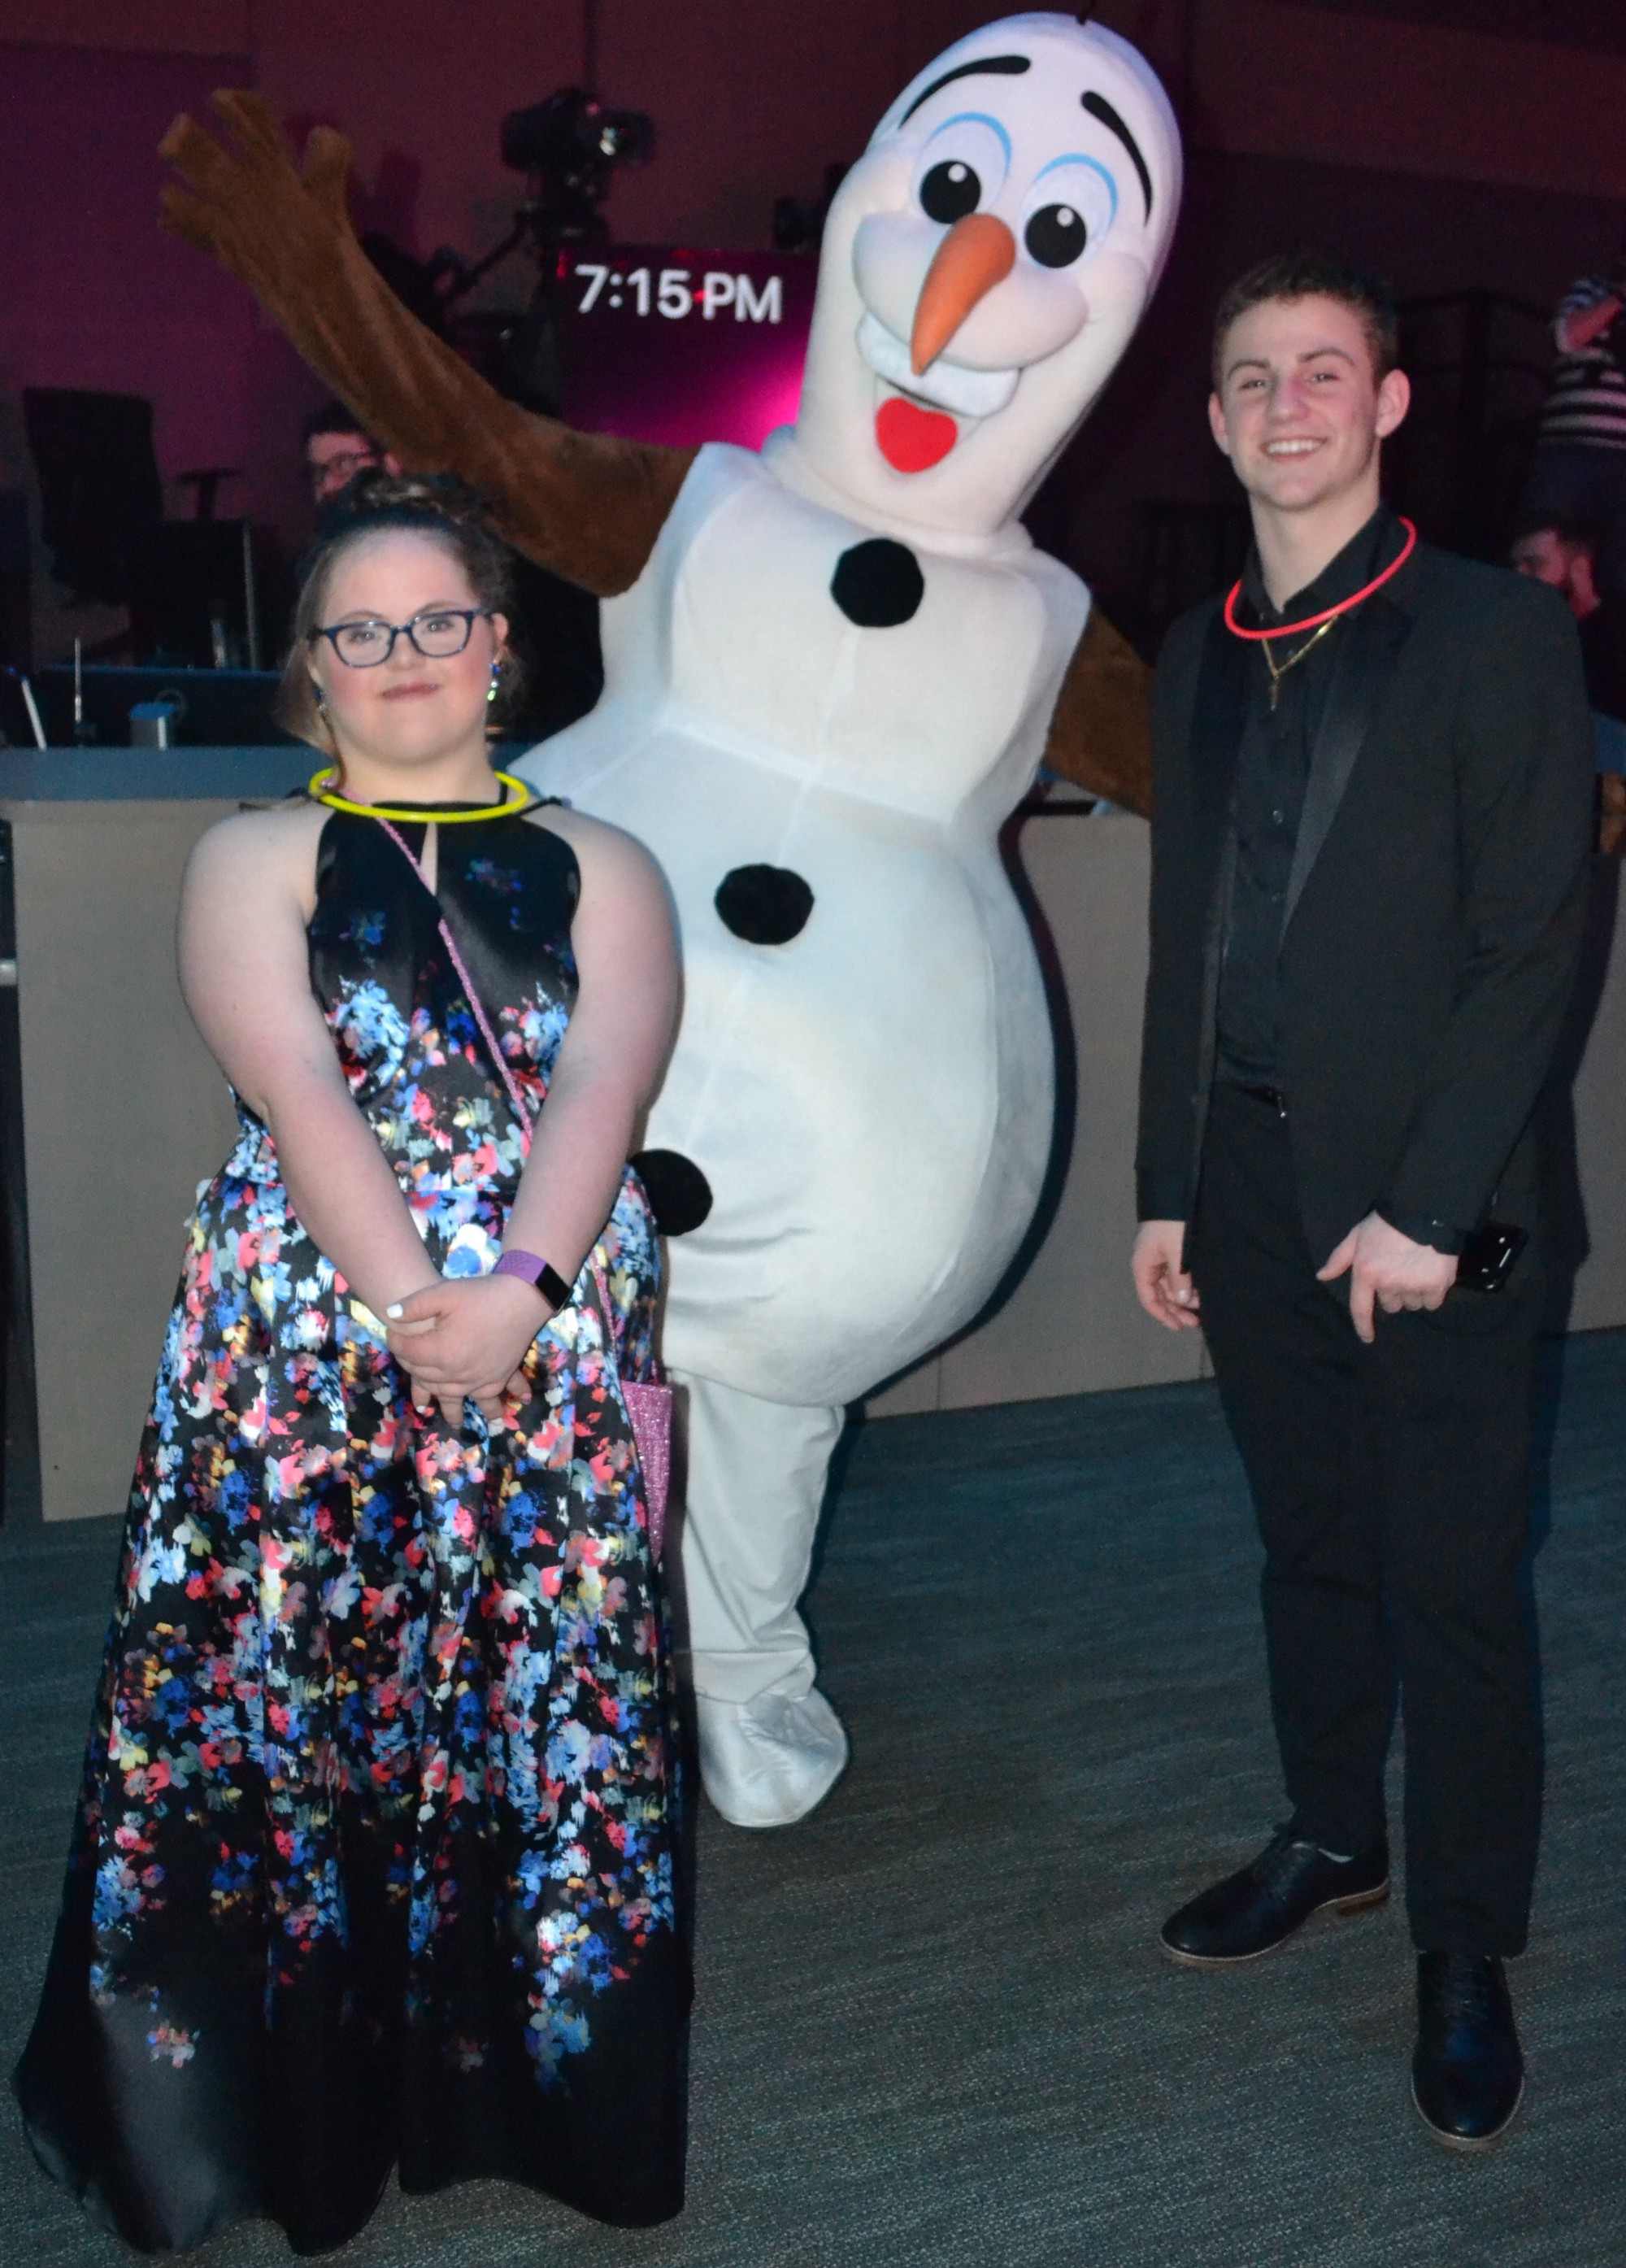 (left to right) Sarah Grace wearing a floral ball gown, Olaf (charchter from Frozen), and her brother Mathew wearing a suit